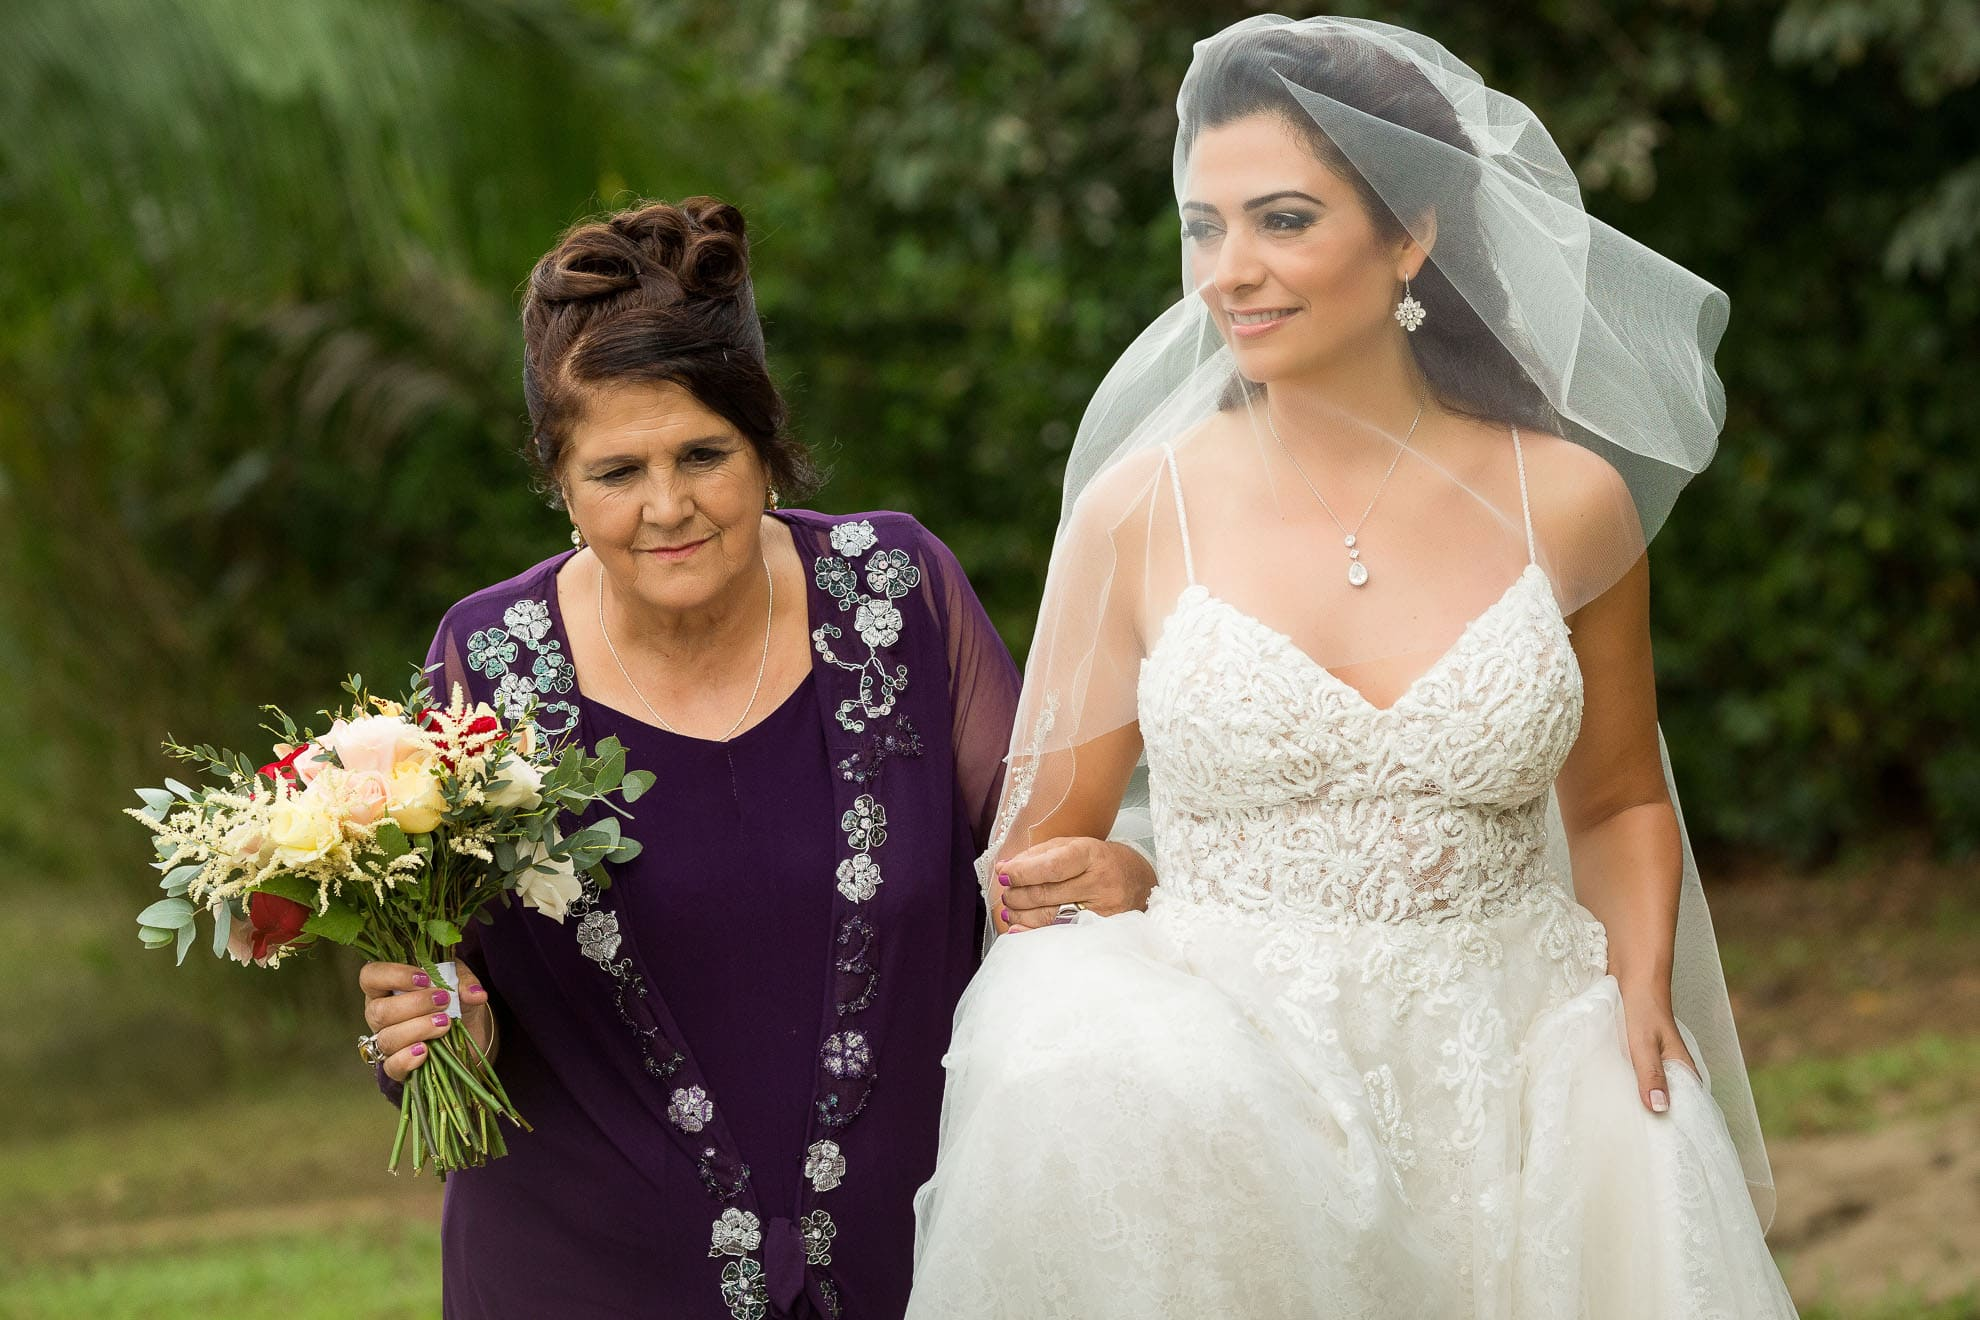 Mother walks bride down aisle